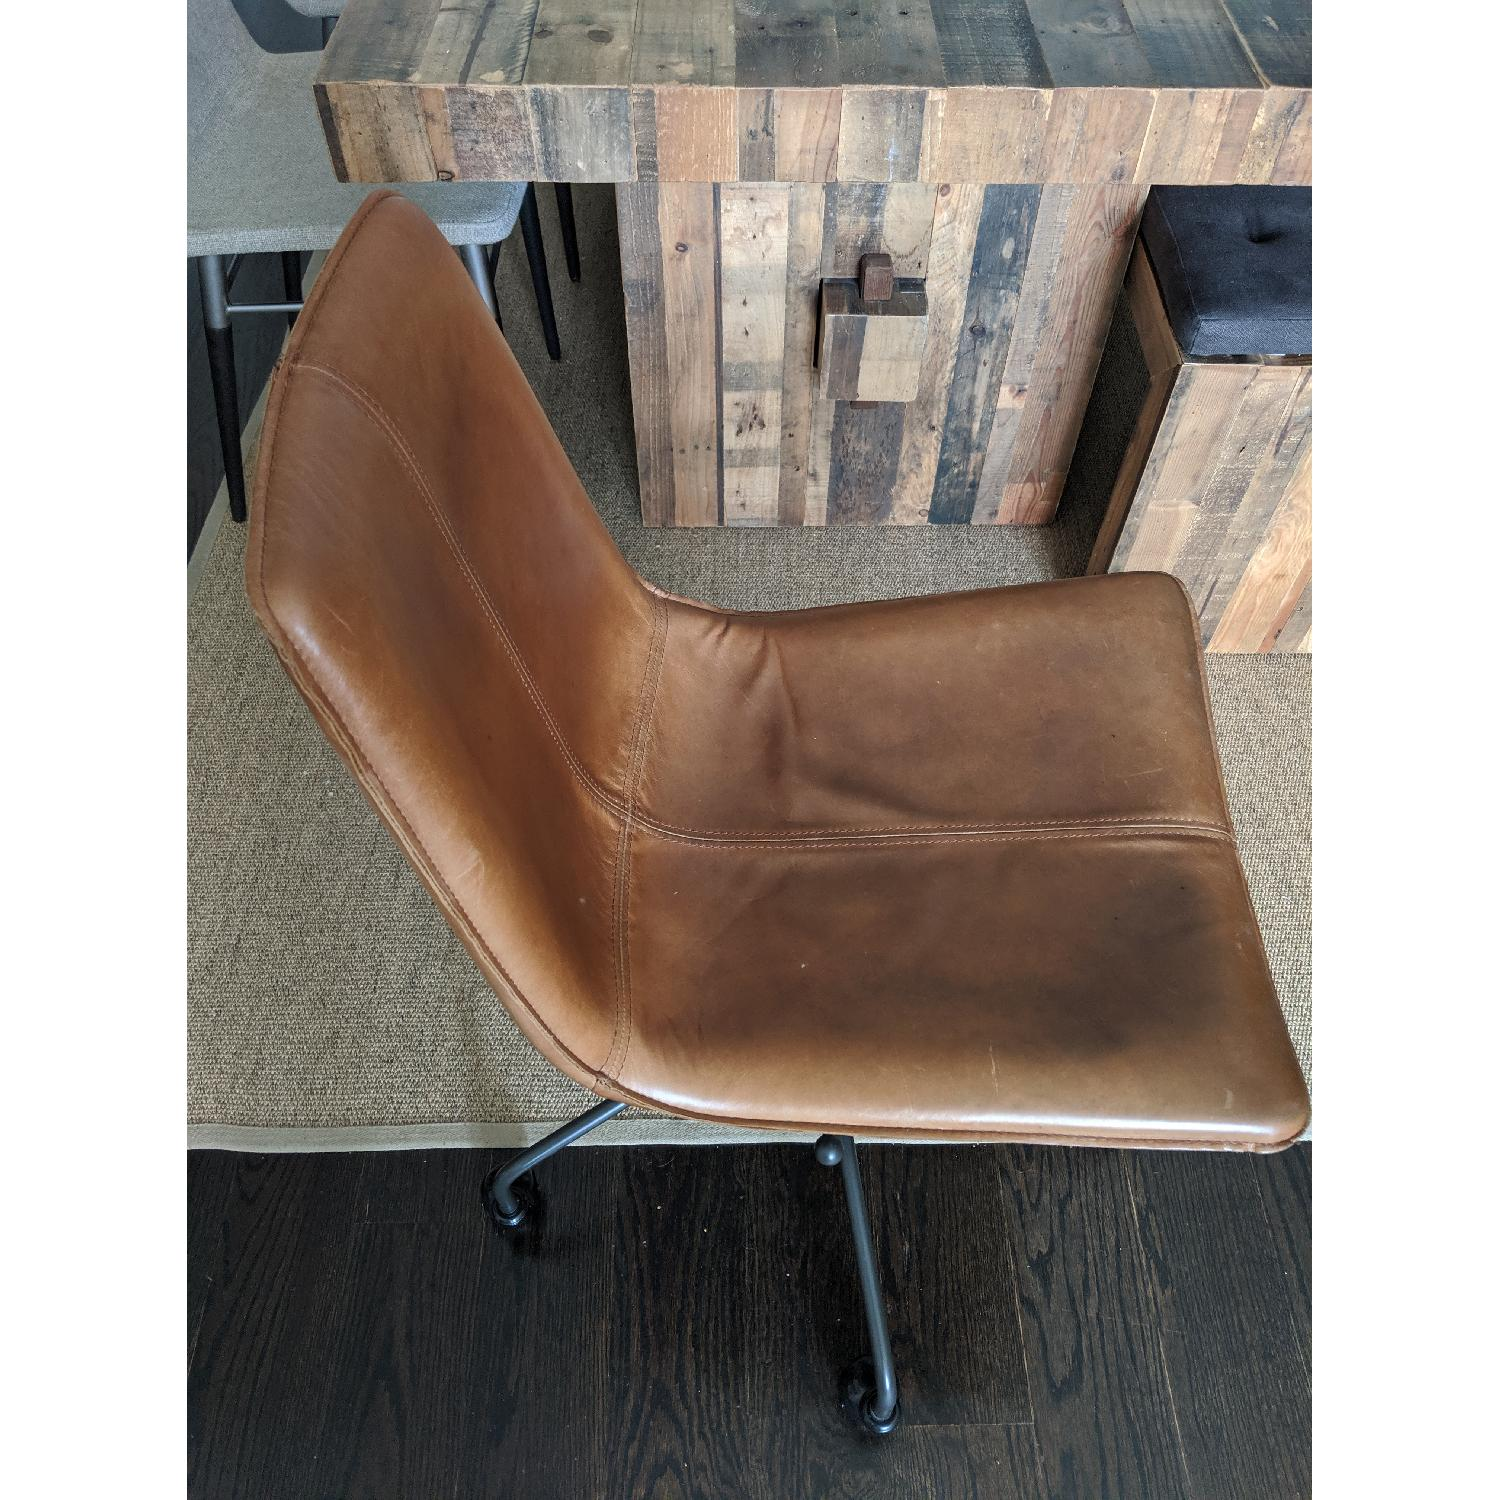 West Elm Slope Leather Swivel Office Chair - image-3